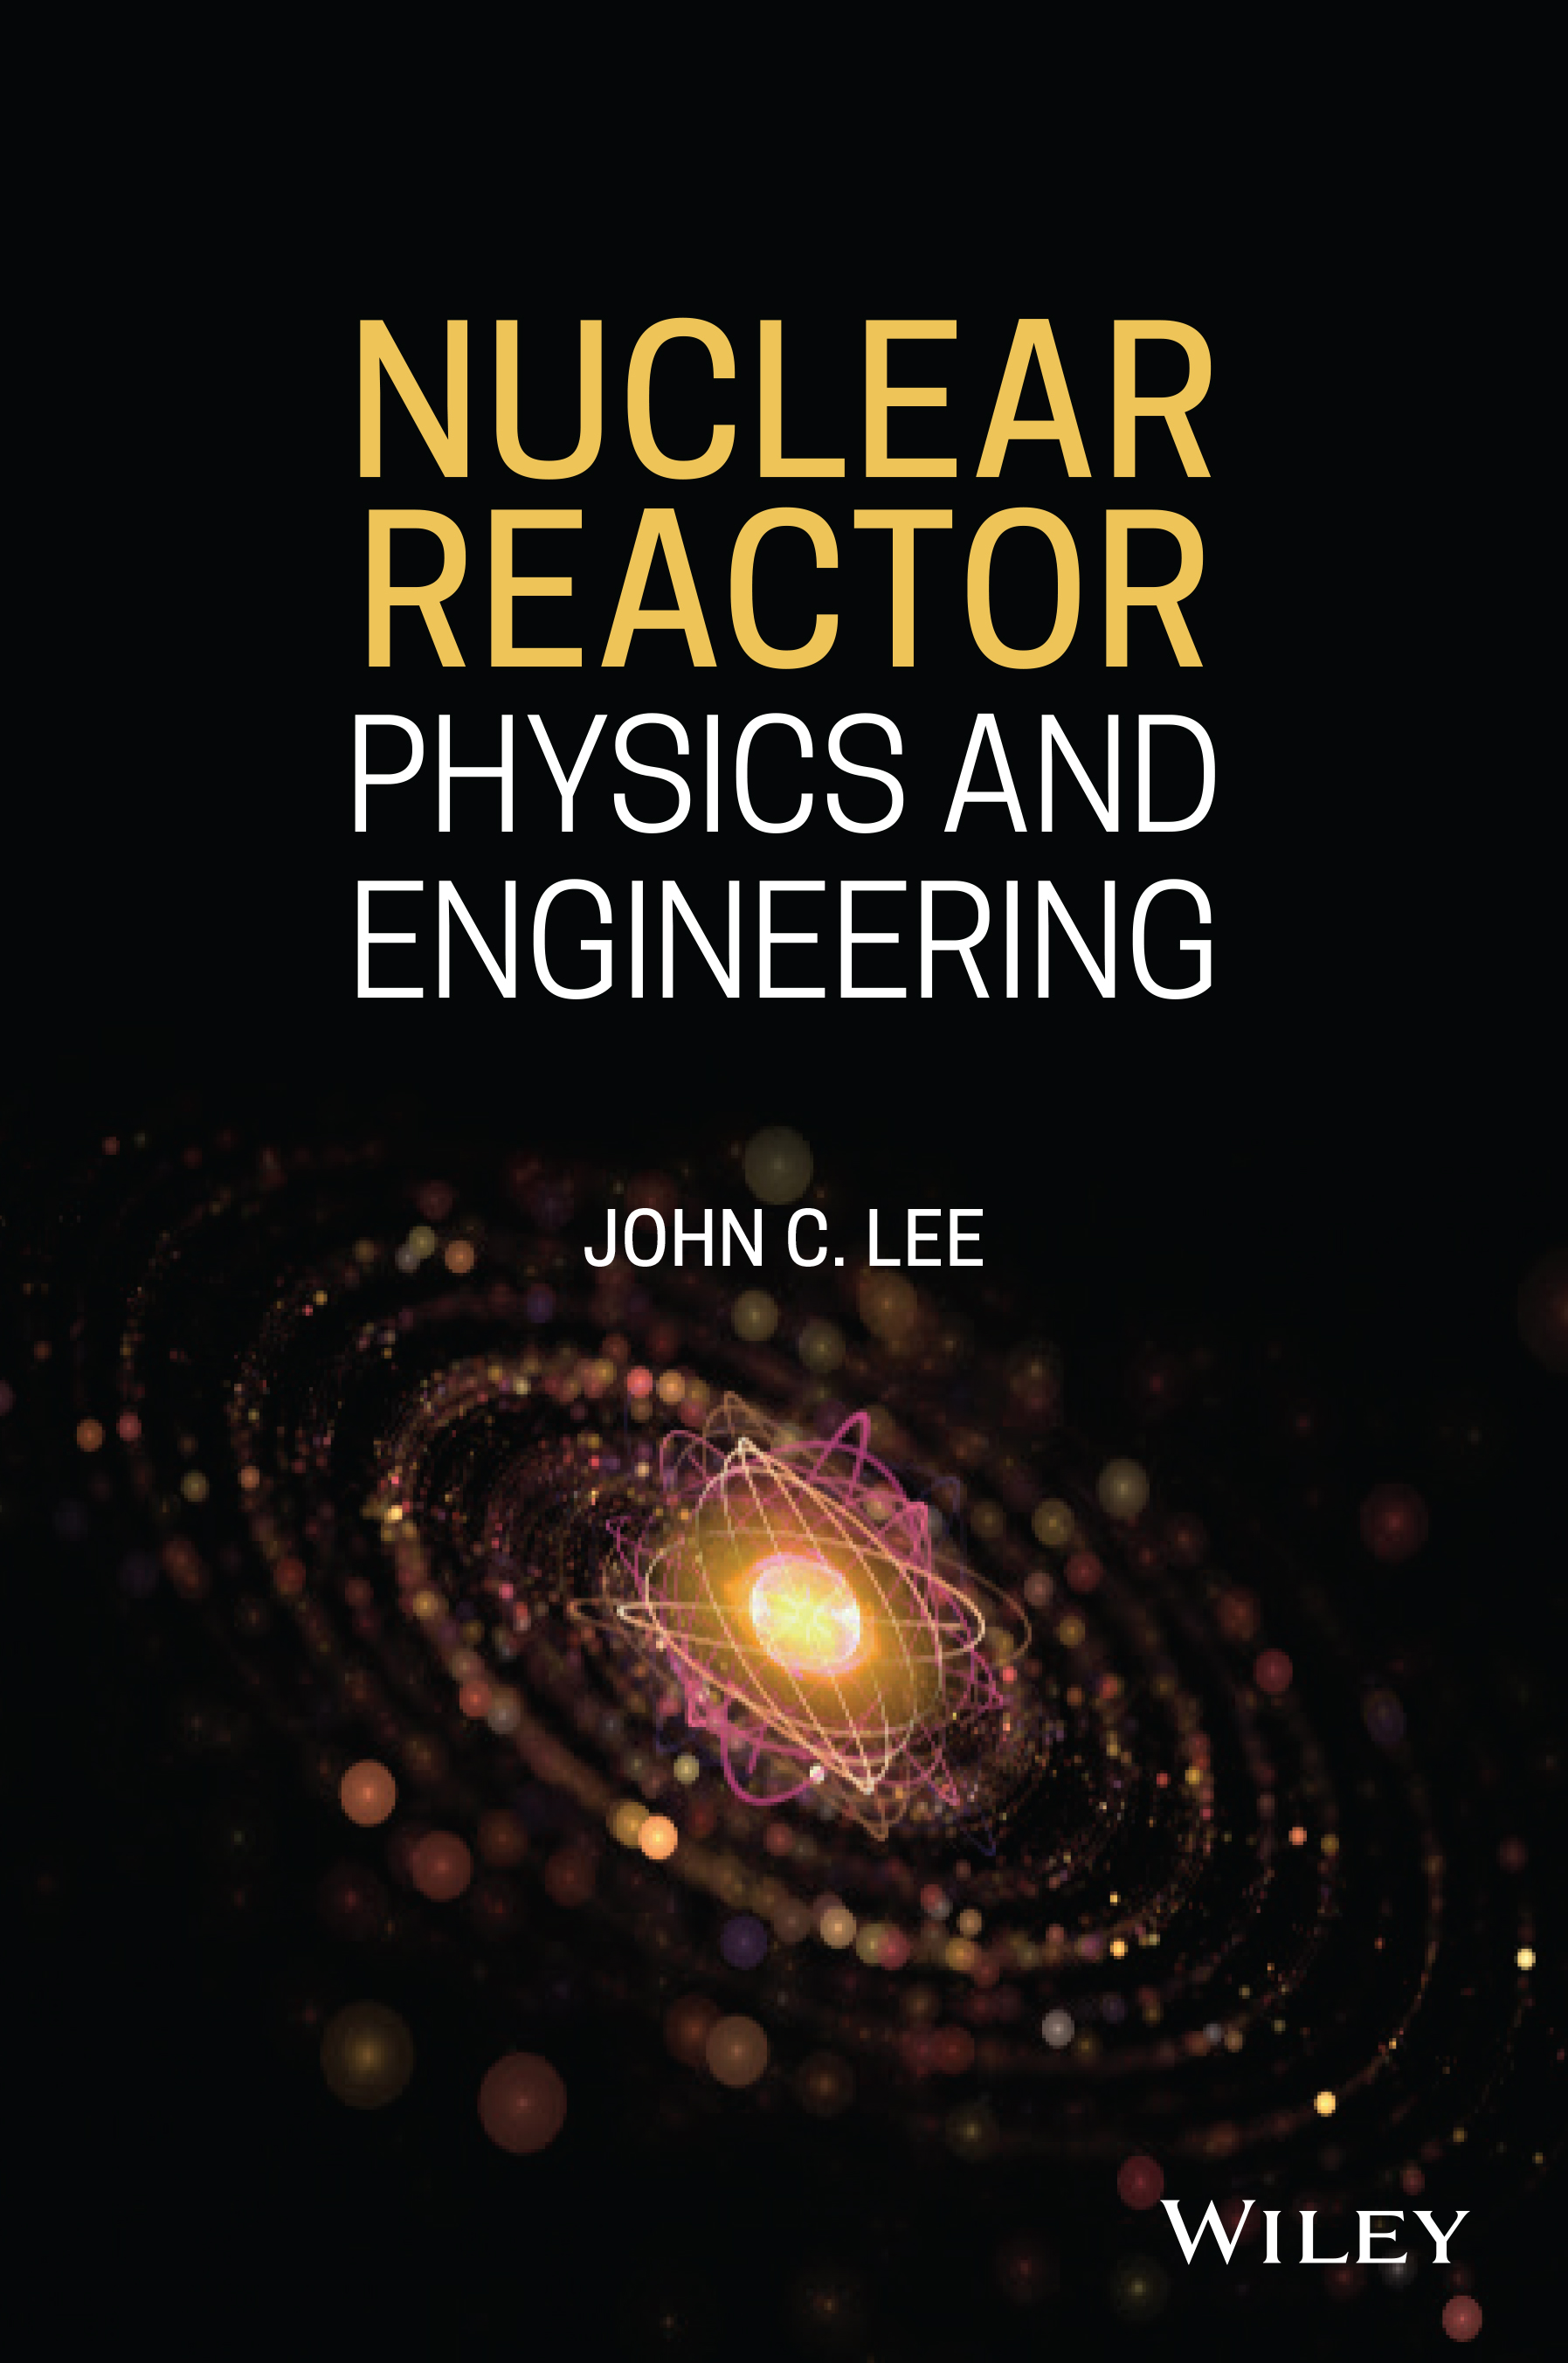 Cover of Nuclear Reactor Physics and Engineering by John C. Lee